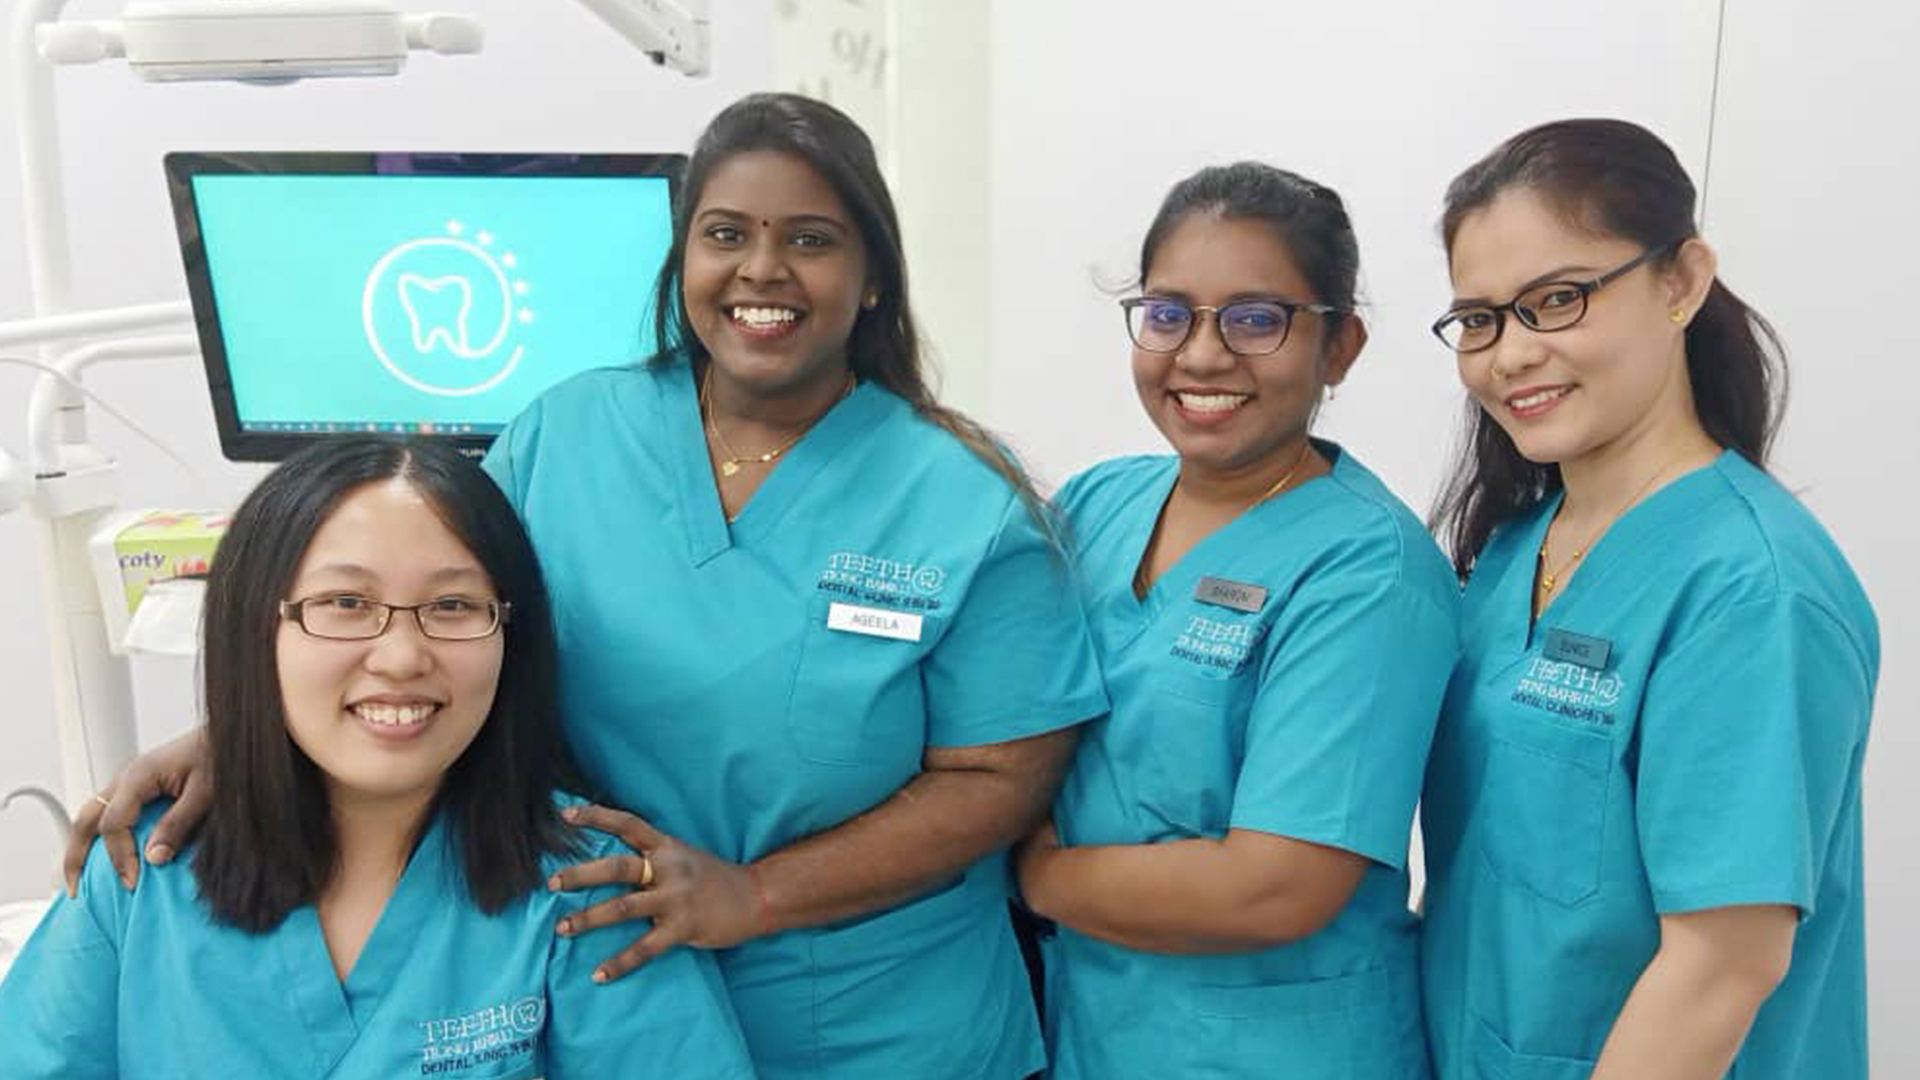 TEETH Tiong Bahru neighborhood dental clinic team